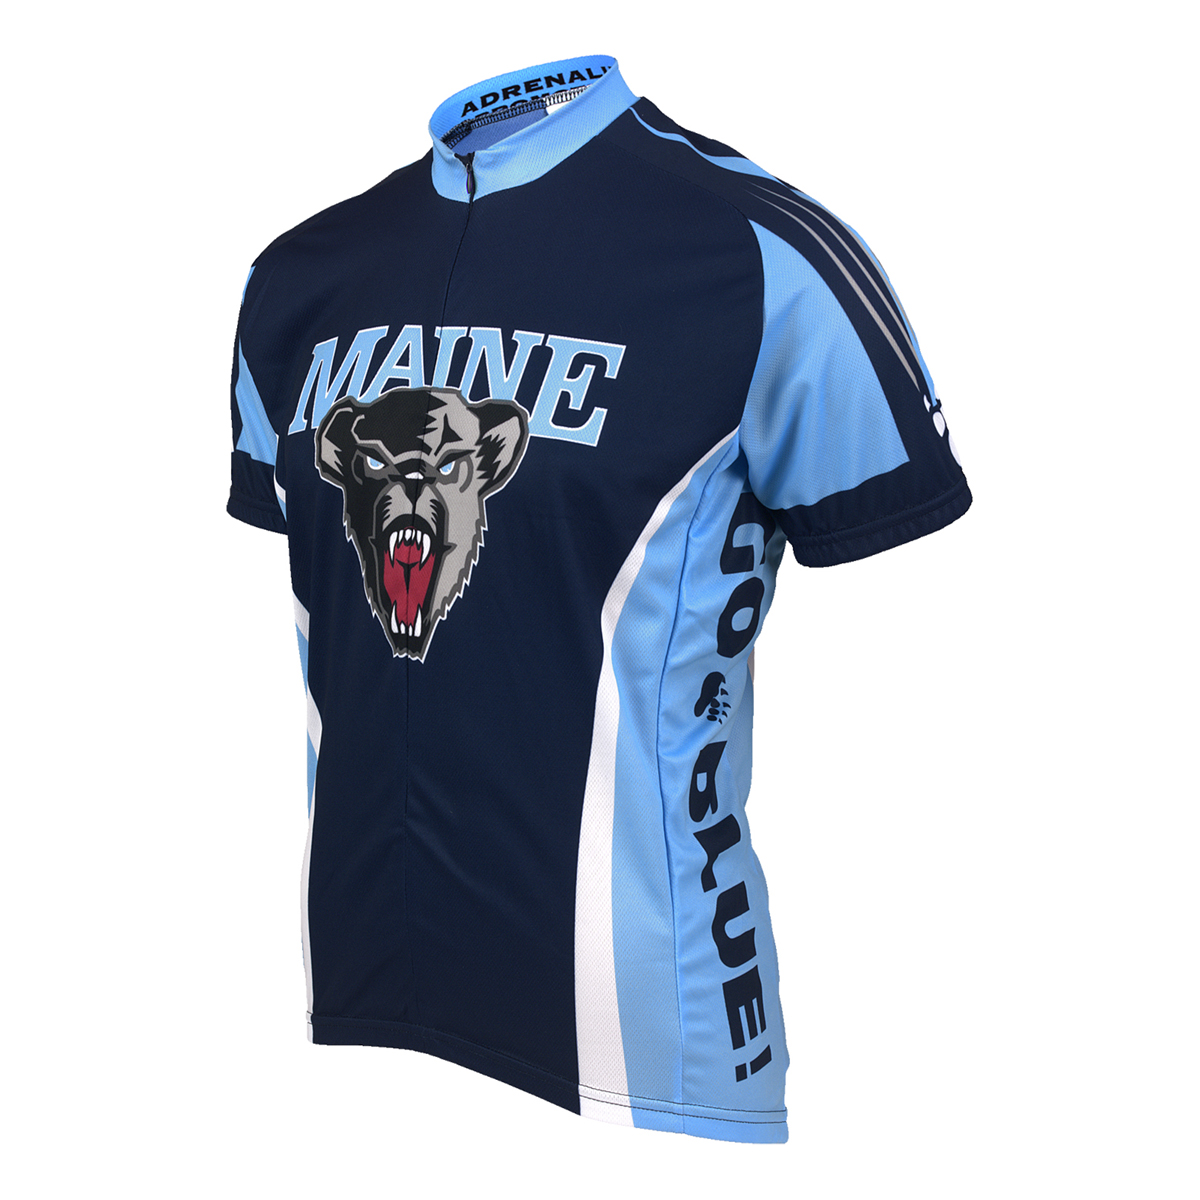 Adrenaline Promotions University of Maine Bears Cycling Jersey